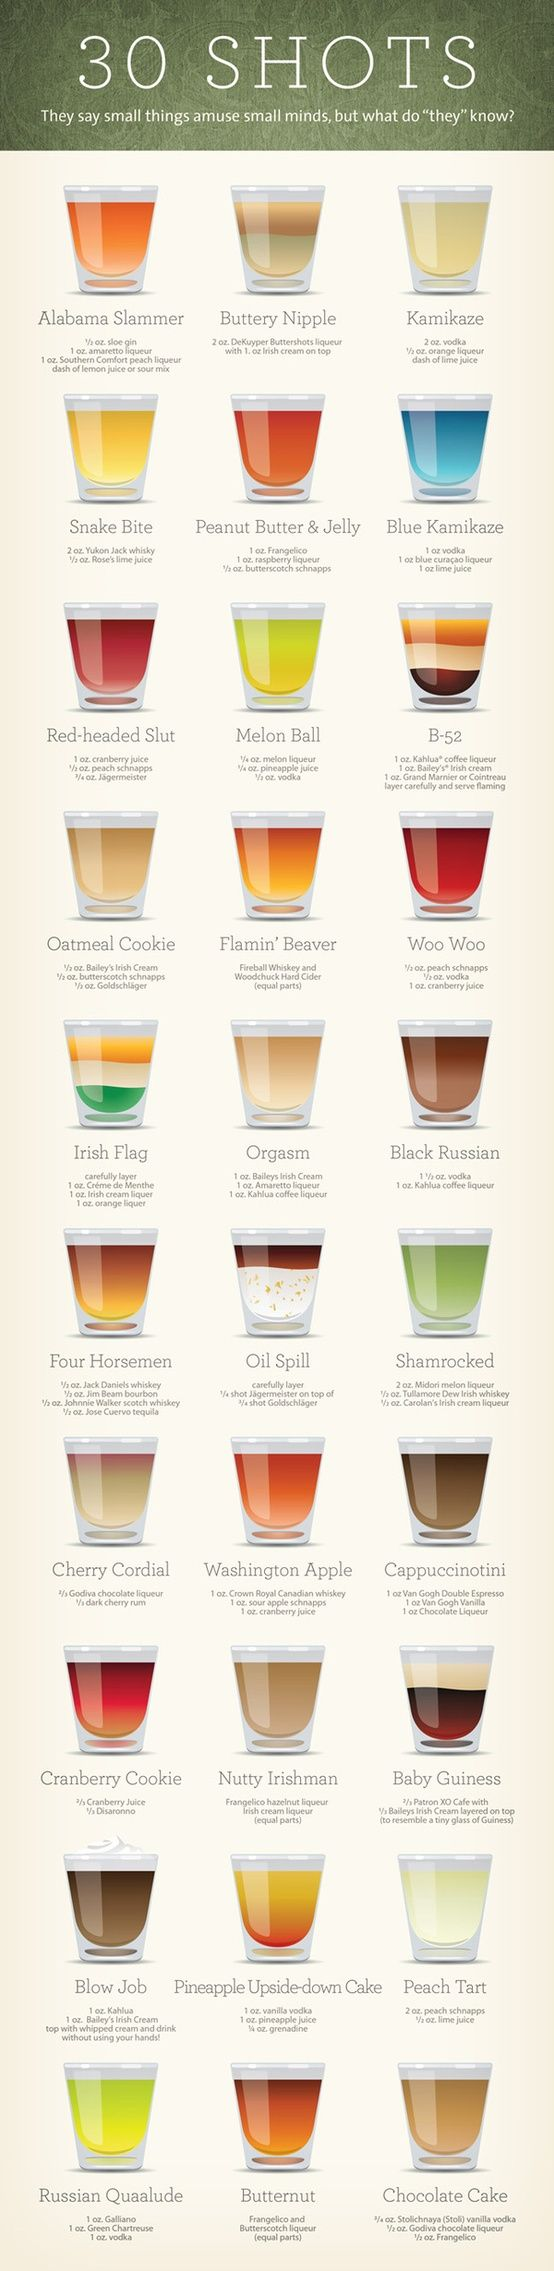 30+delicious+shots!+Good+to+know! - Click image to find more DIY & Crafts Pinterest pins